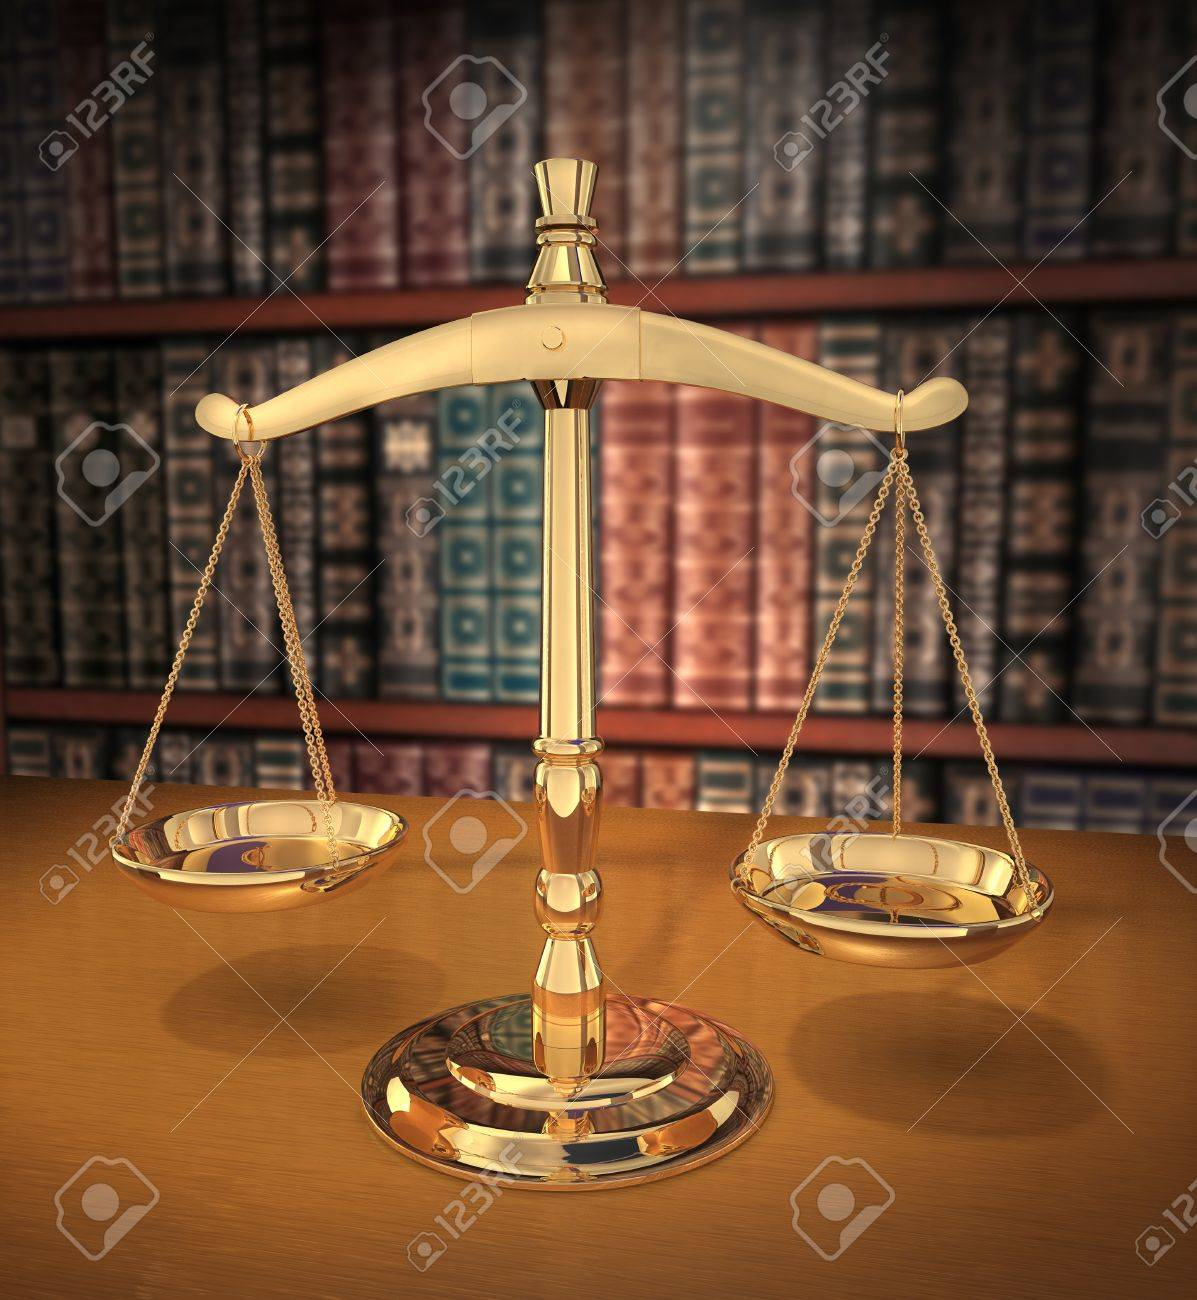 Brass Scales of Justice on a desk showing Depth-of-field books behind in the background Stock Photo - 7055169